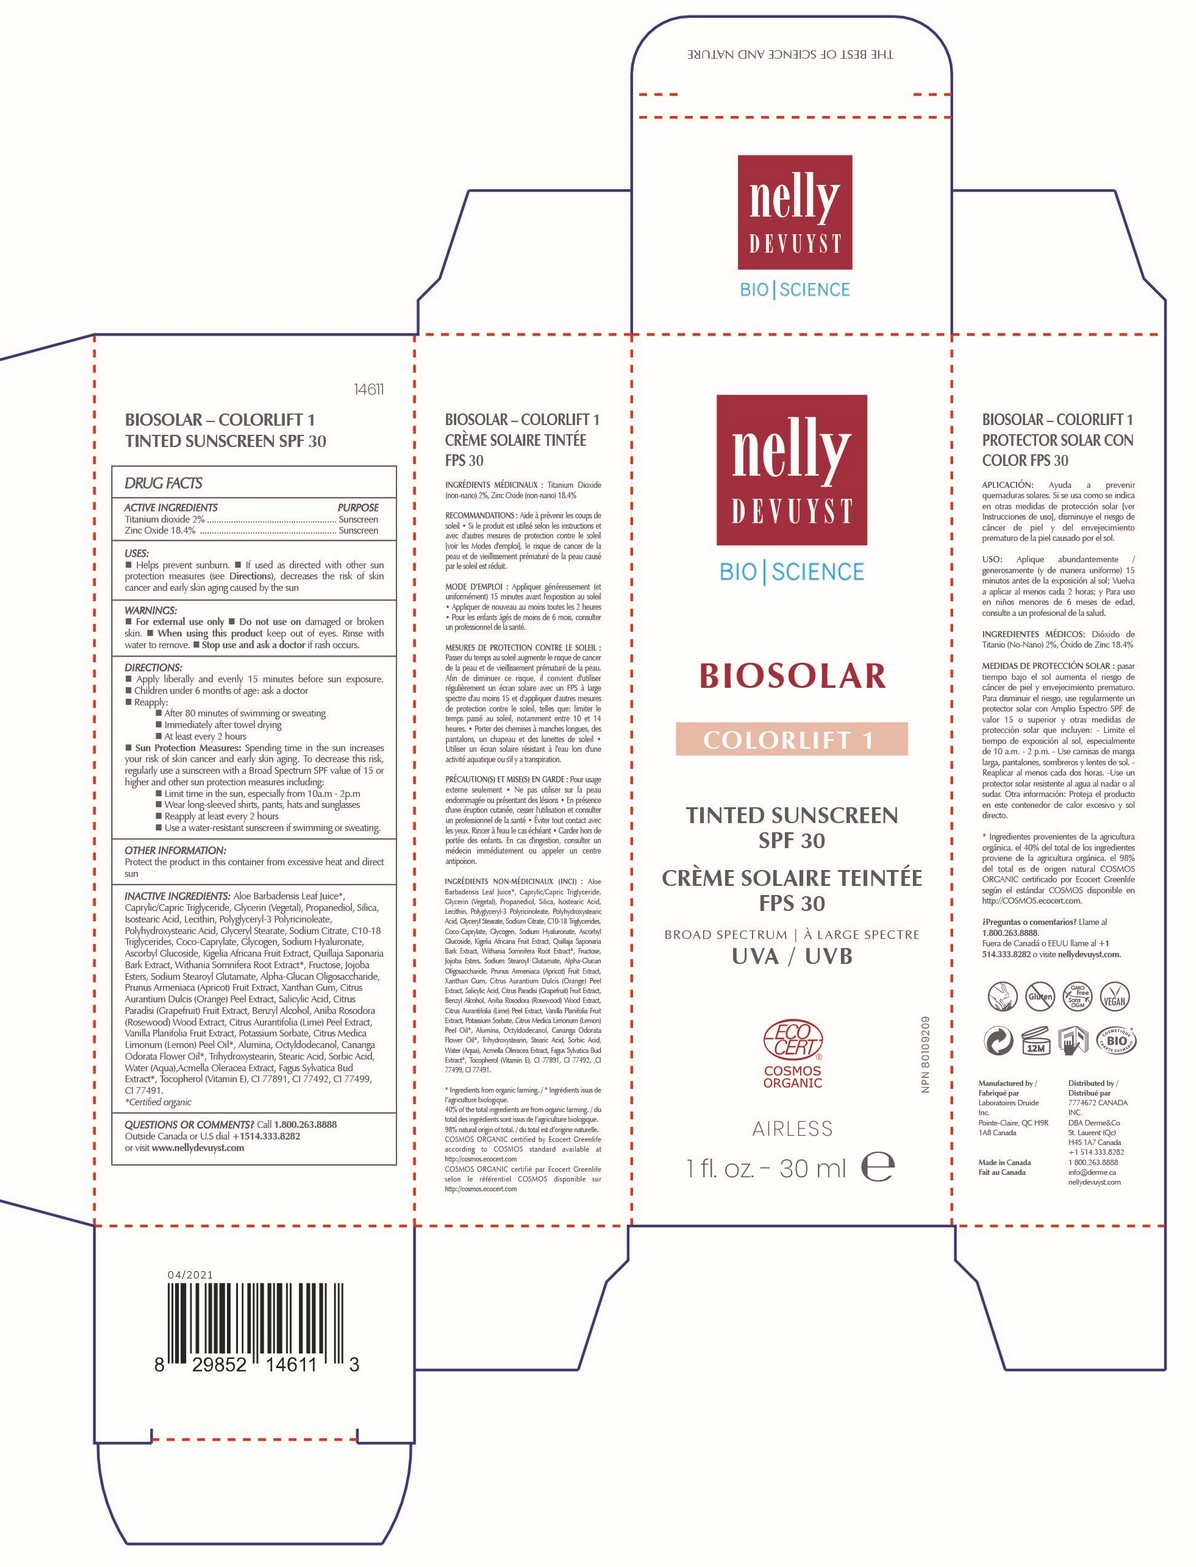 Nelly Devuyst Biosolar Colorlift 1 Tinted Sunscreen 30 mL